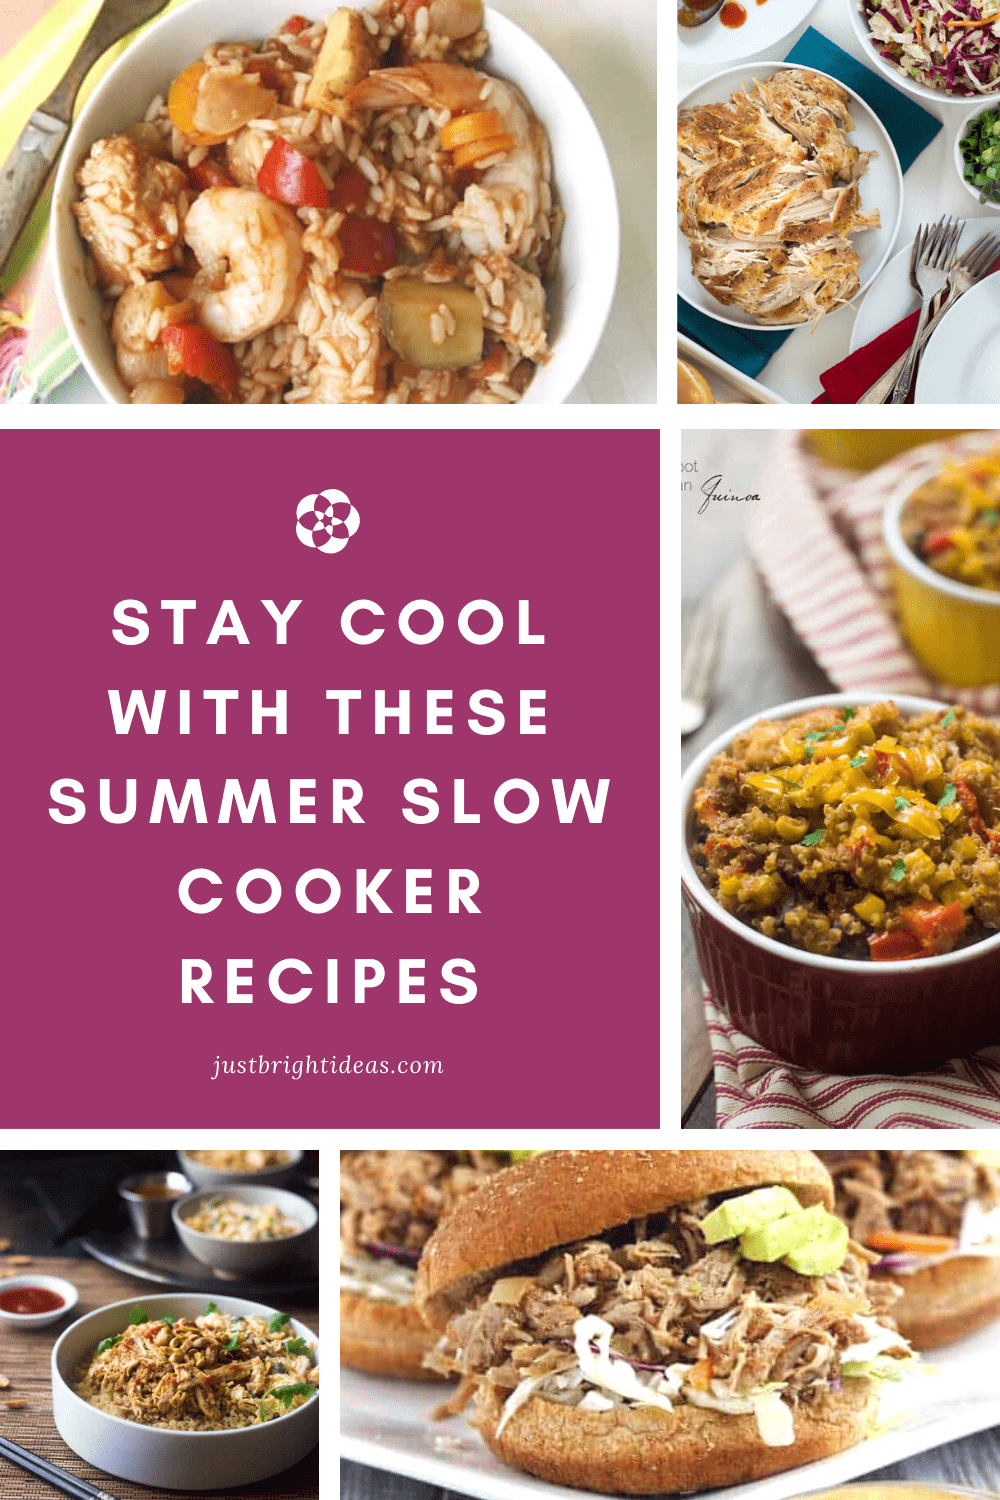 Stay cool this summer with these delicious slow cooker recipes the whole family will enjoy